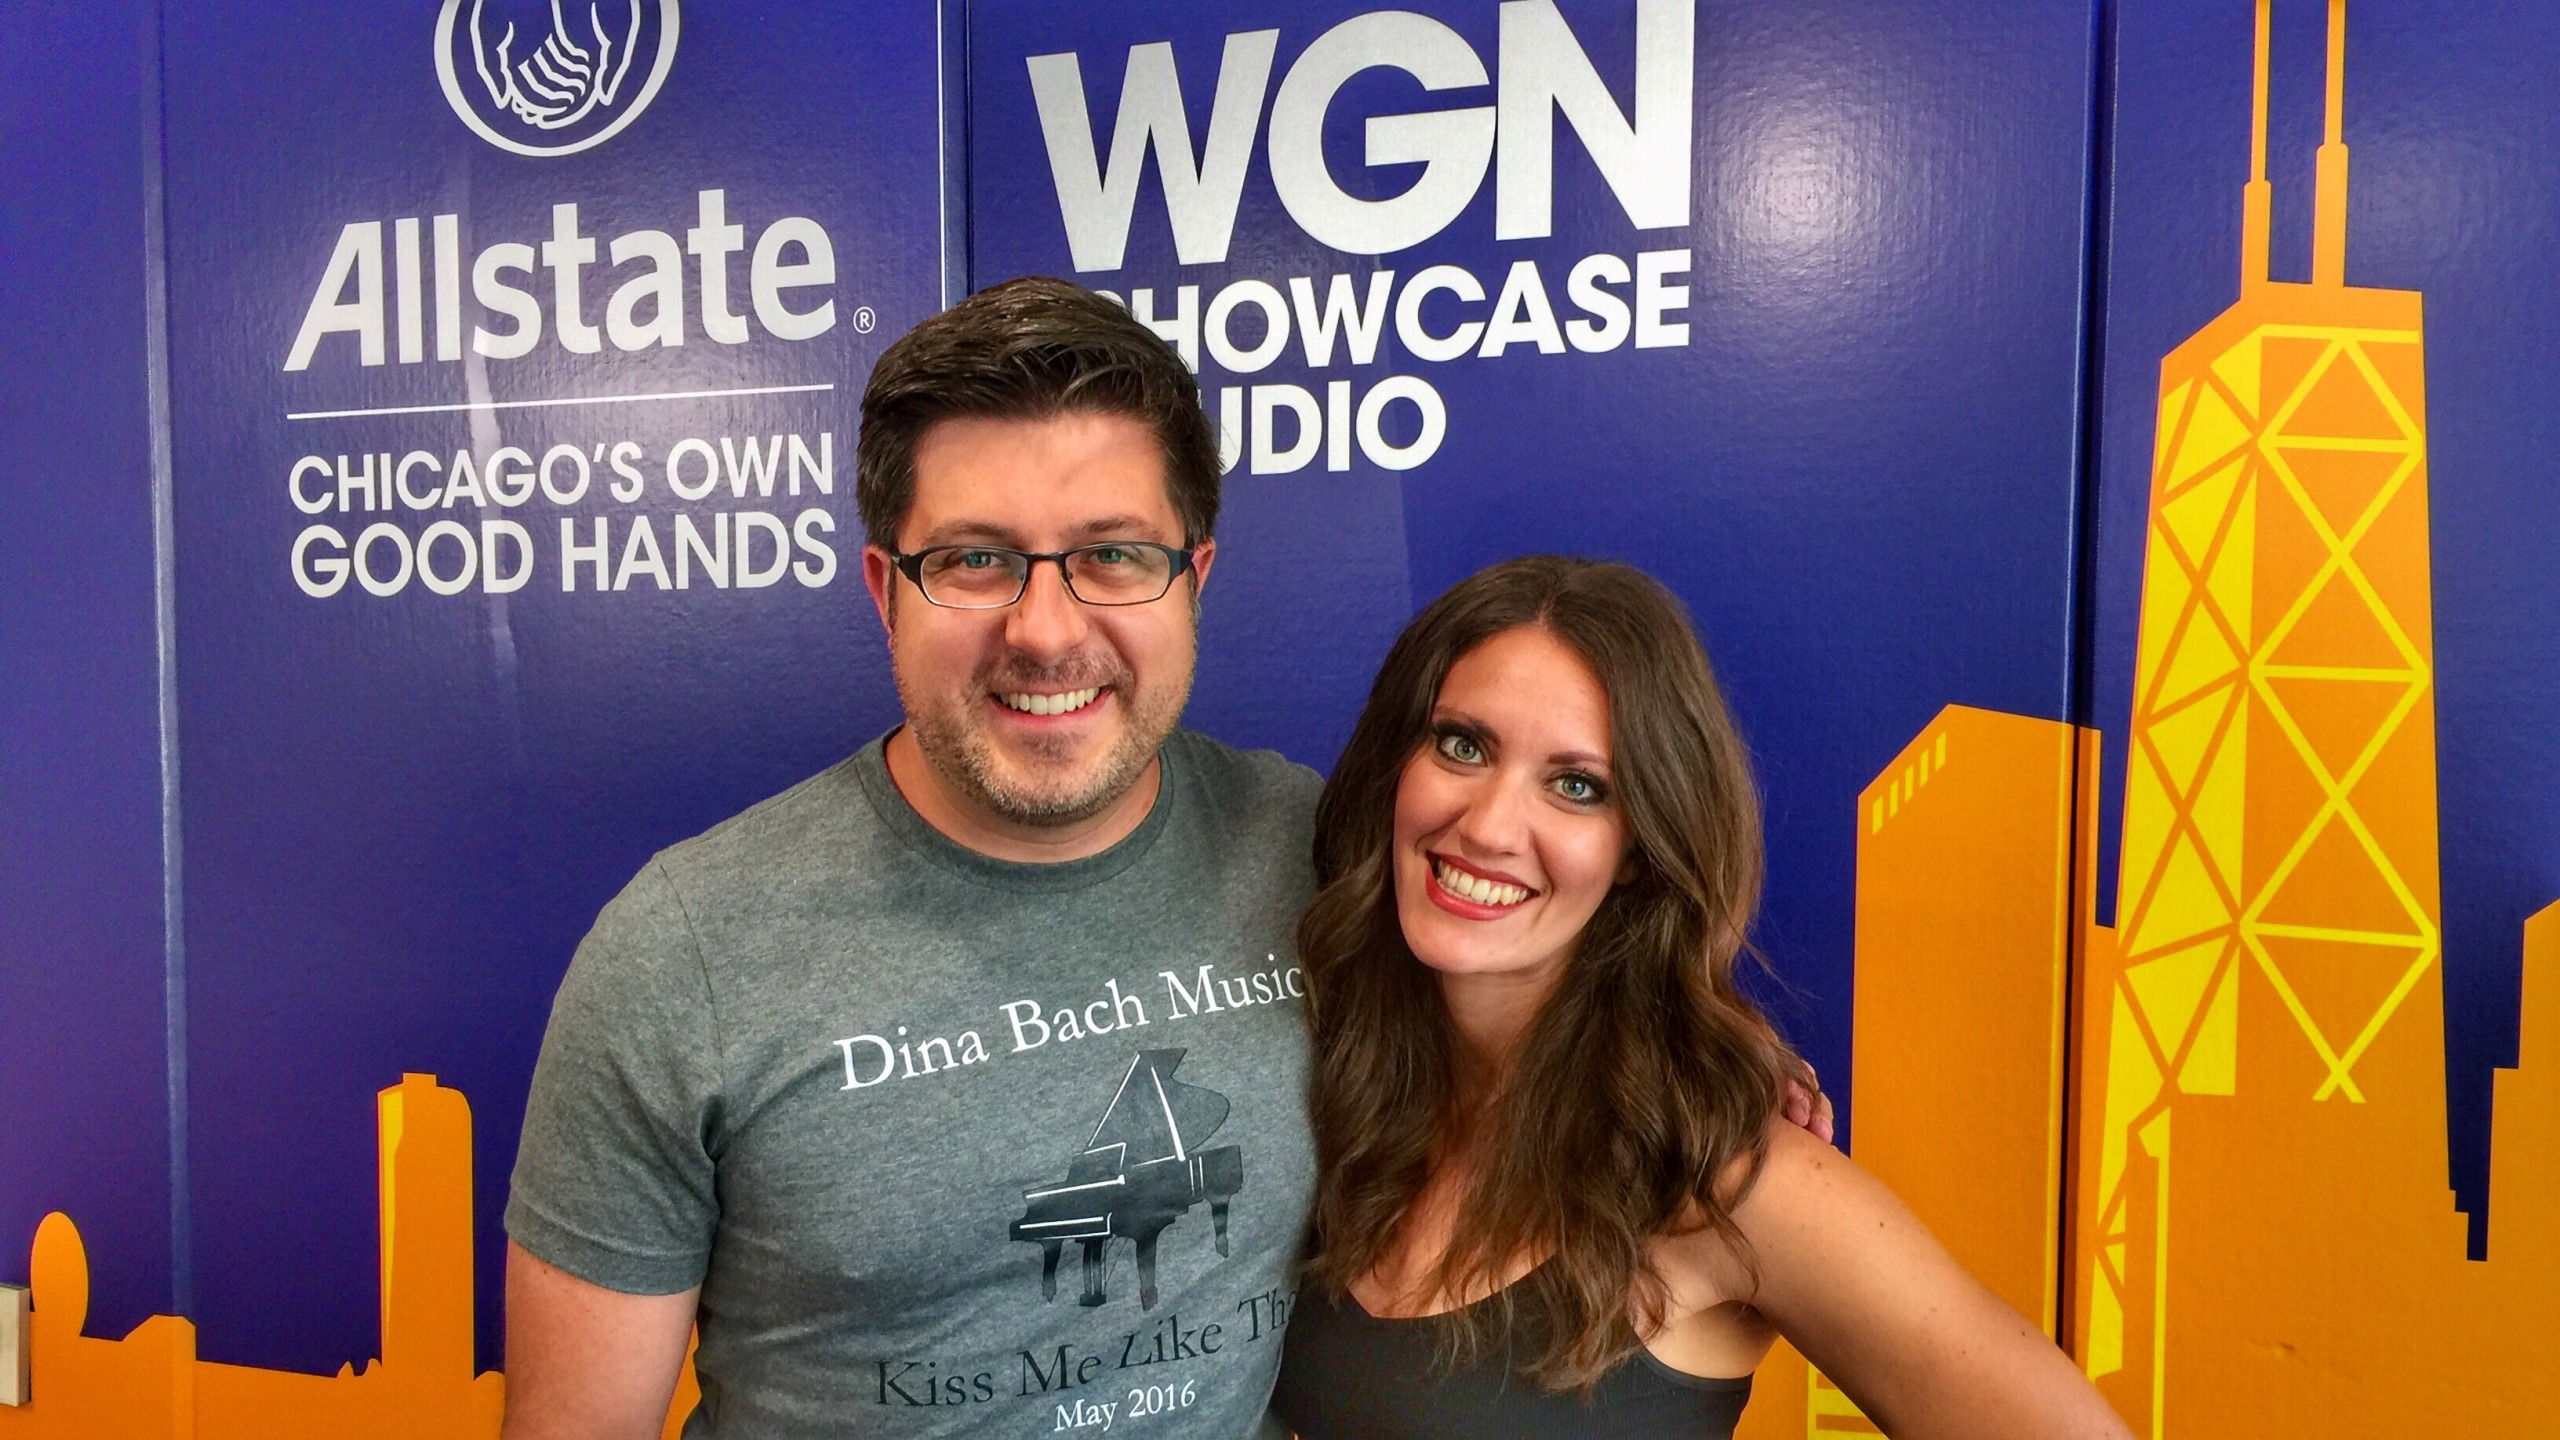 OTL host Mike Stephen is very excited to welcome local musician Dina Bach back to the WGN Radio studio to provide the live soundtrack to OTL #561.